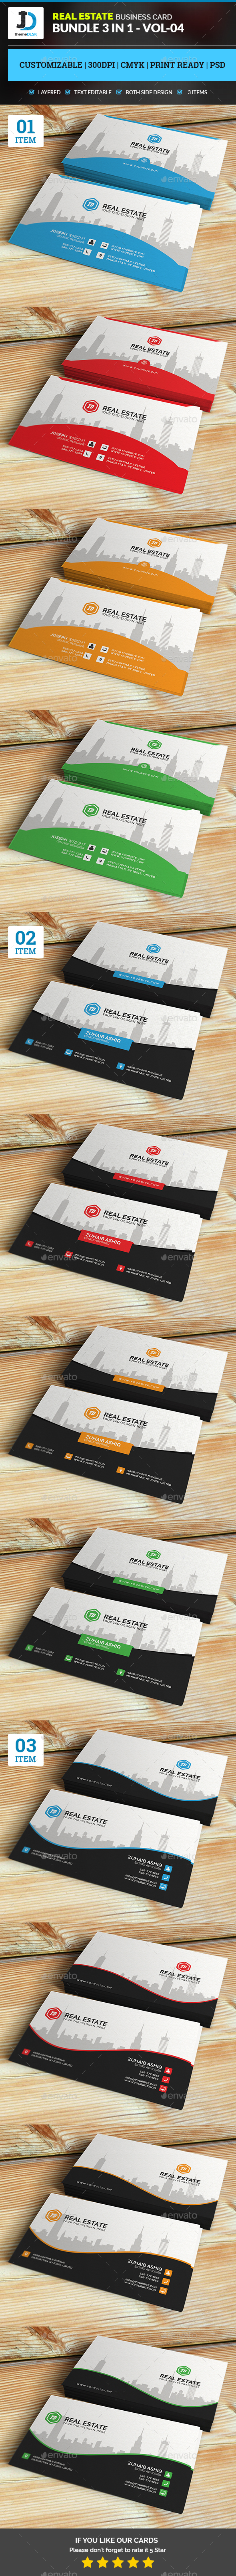 Real Estate - Business Card Bundle 3 in 1 - Vol-4 - Corporate Business Cards